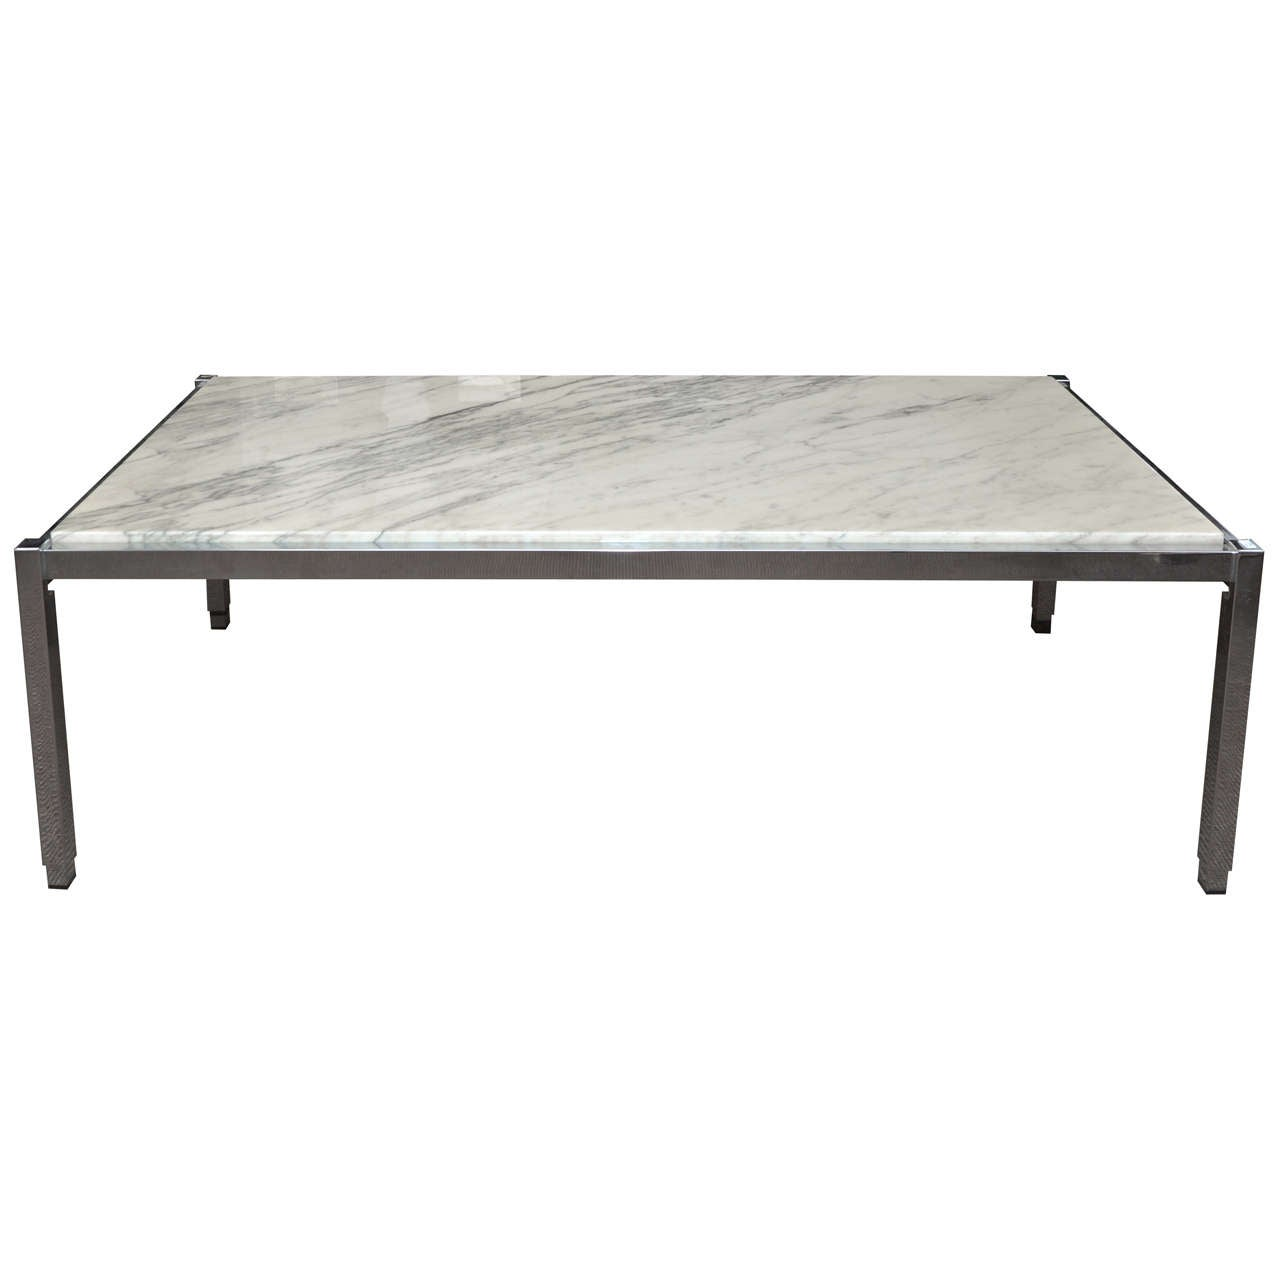 1970s Coffee Table At 1stdibs